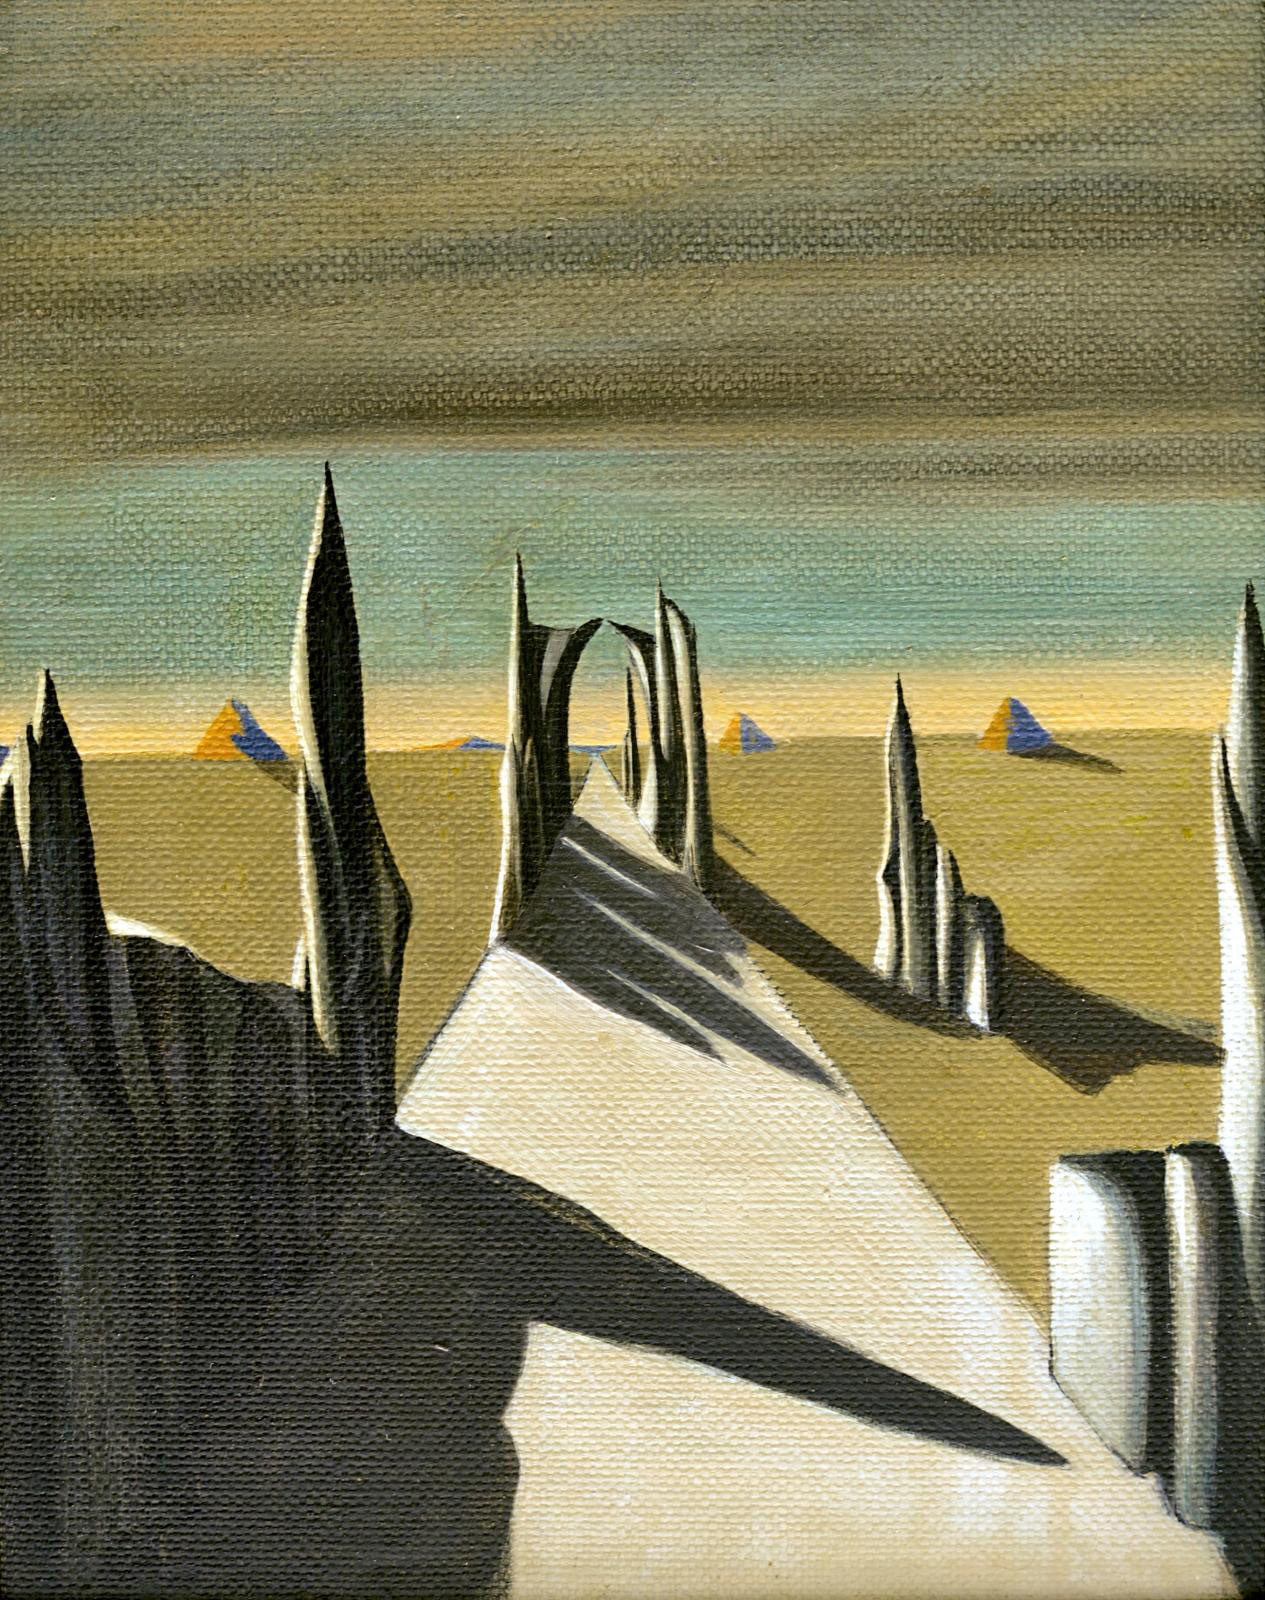 Kay Sage (1898-1963), White Silence, 1941, oil on canvas, 32.5 x 25.5 cm/12.8 x 10 in (detail).Courtesy of Caldwell Gallery Hudson in Huds